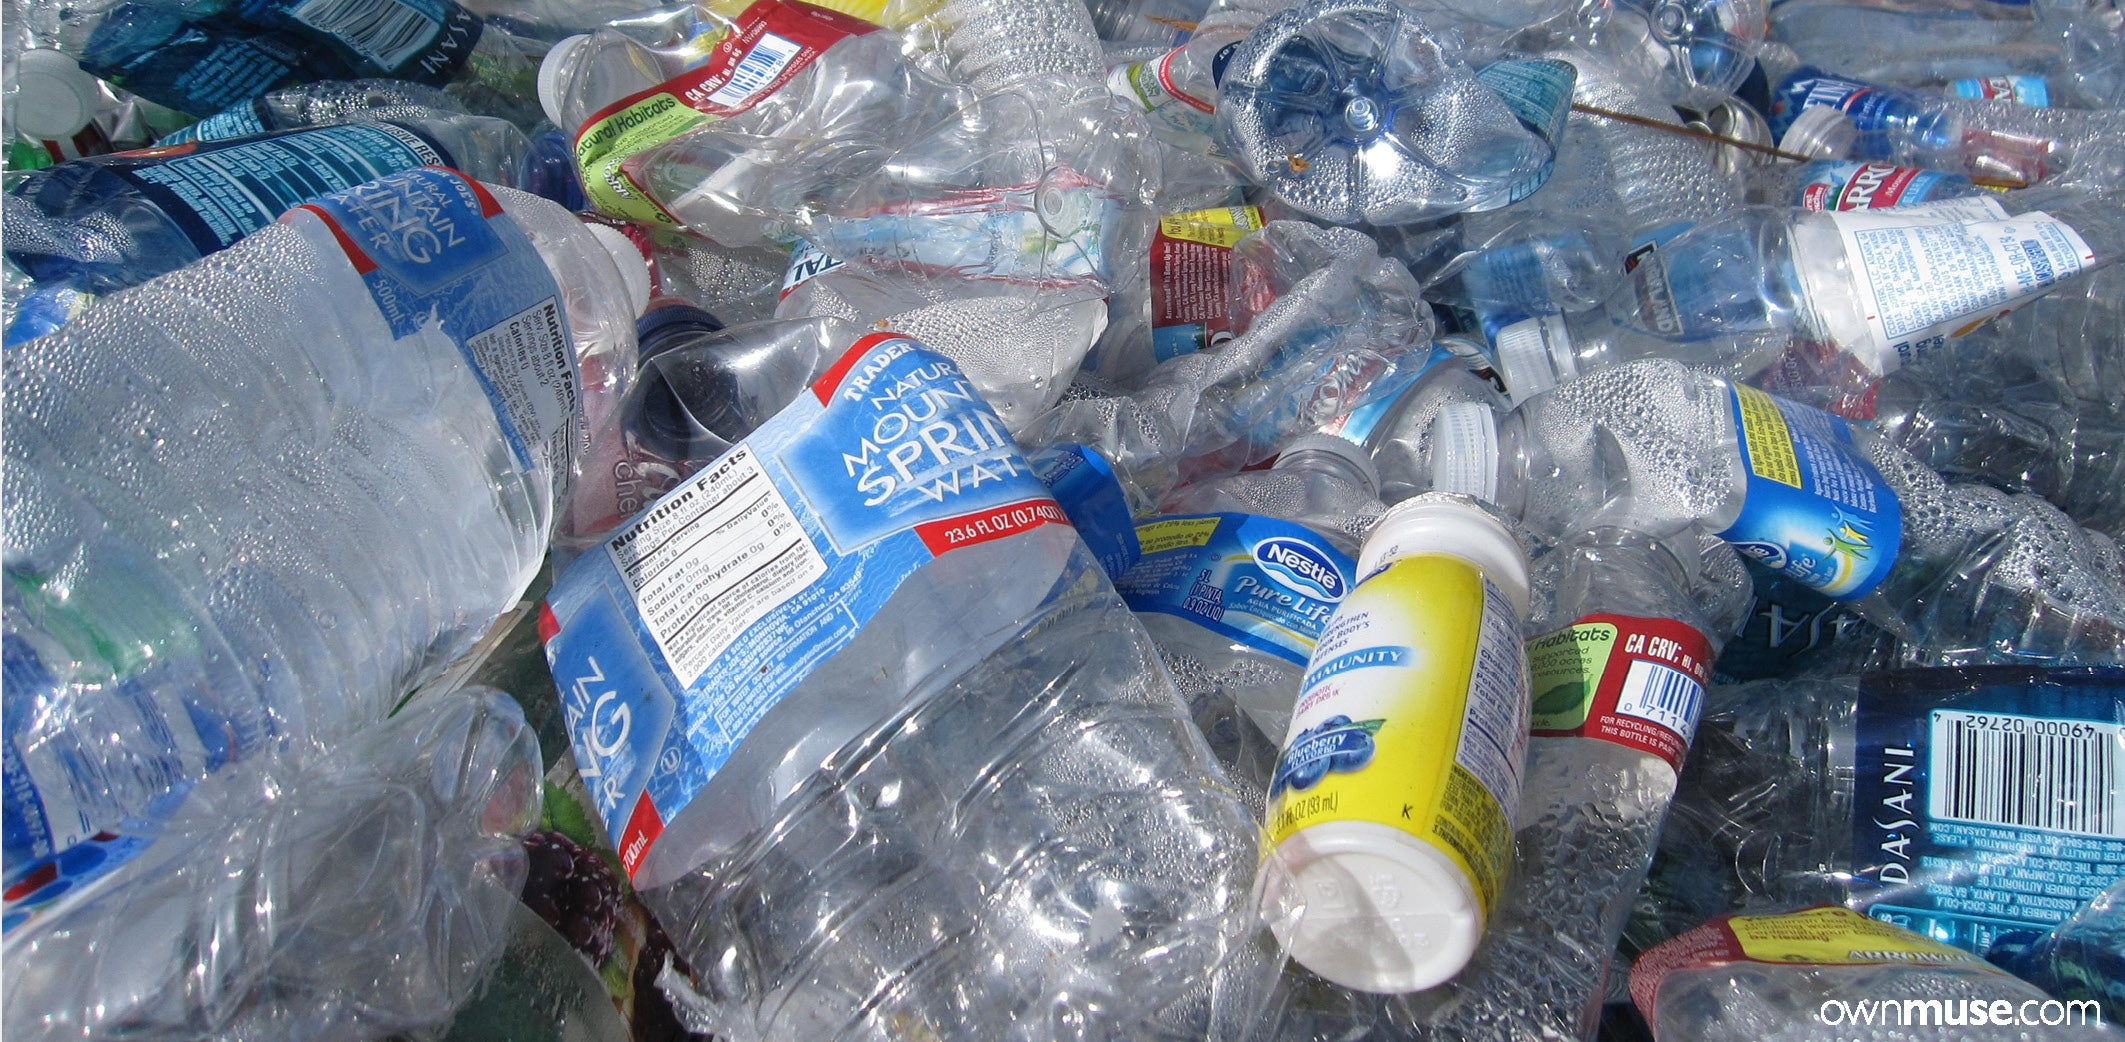 Plastic recycling and how to avoid using plastic